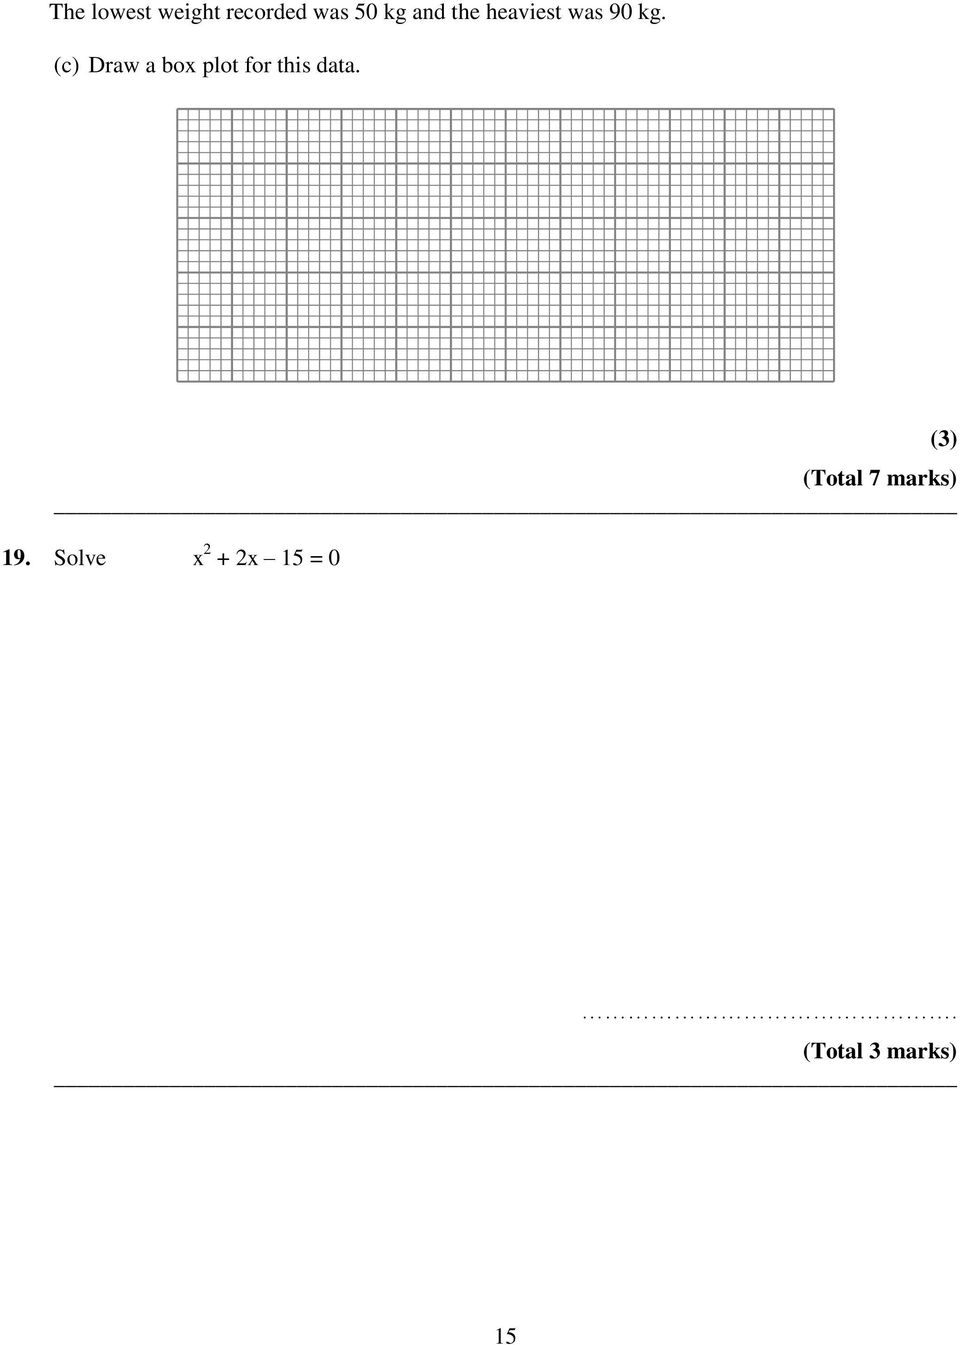 (c) Draw a box plot for this data.